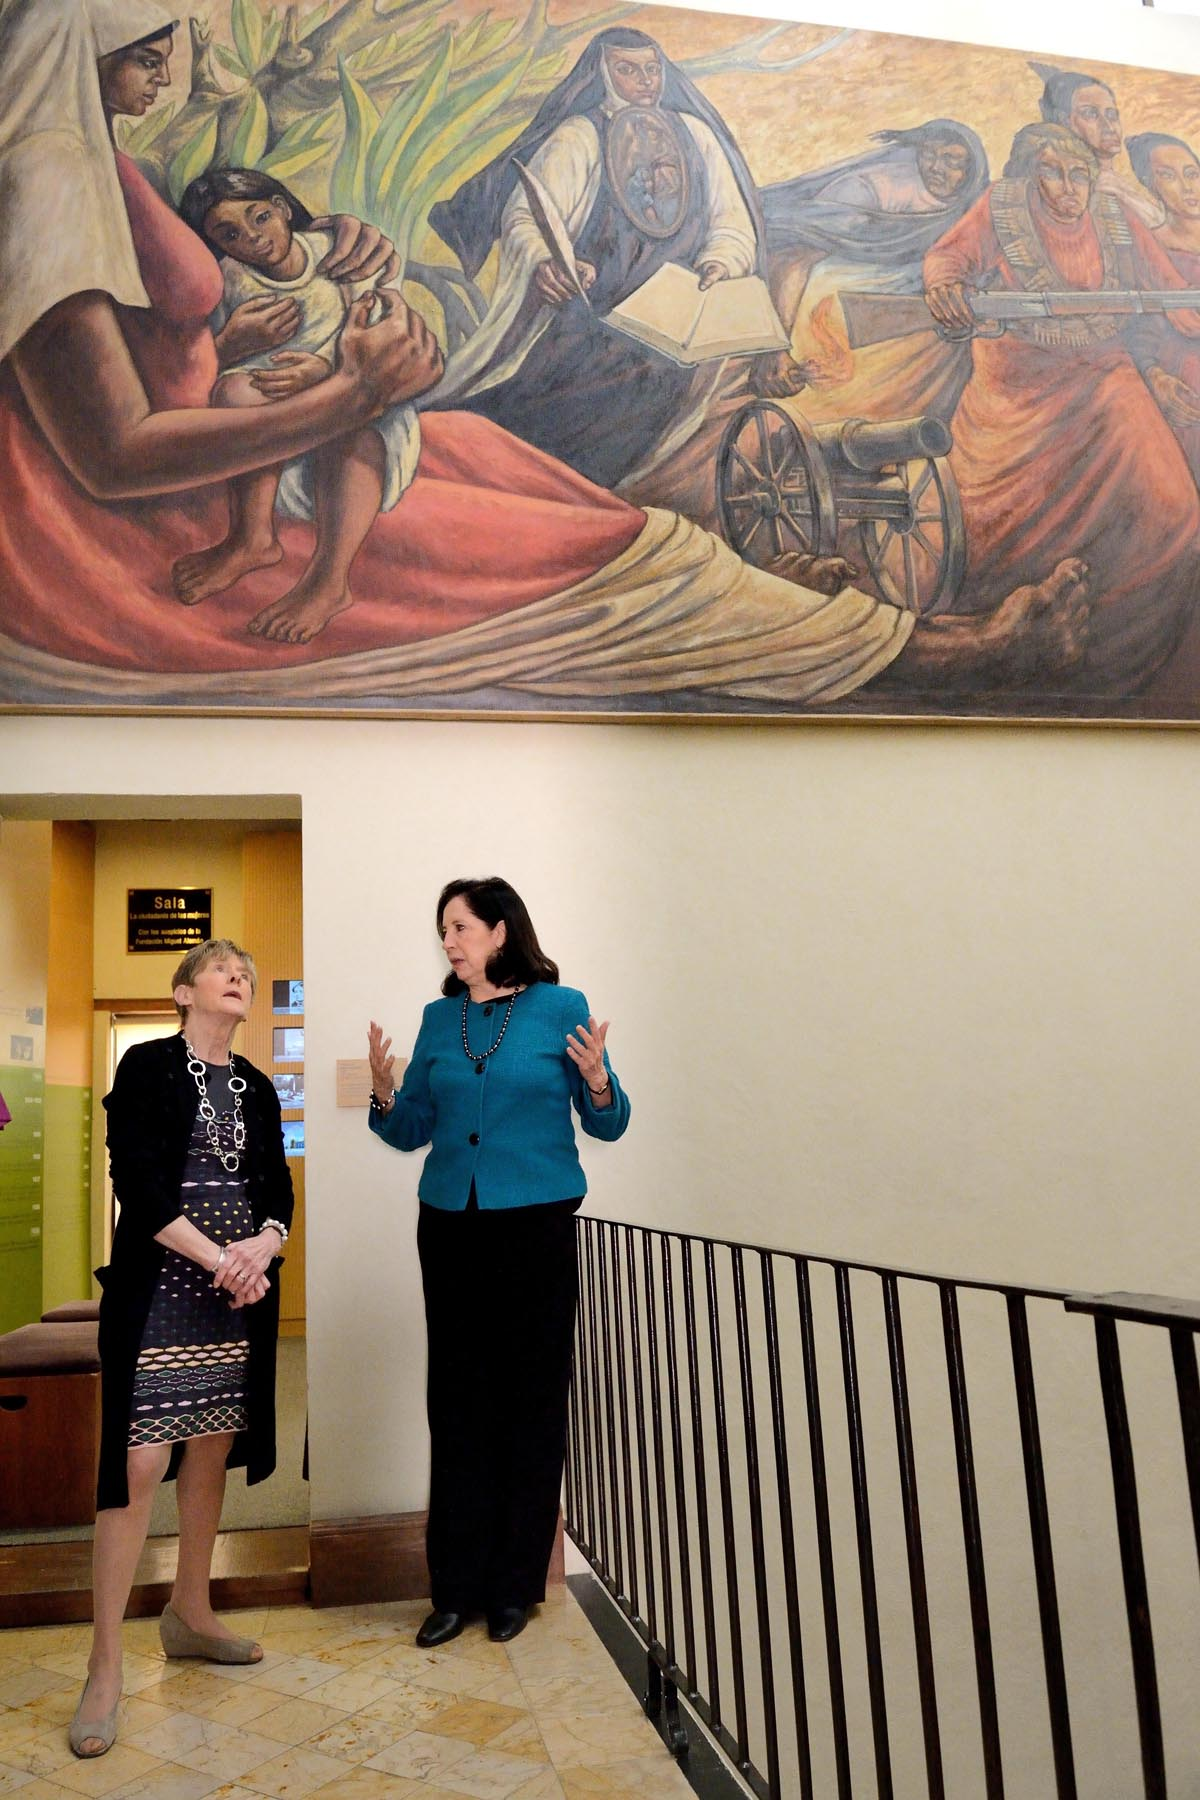 Her Excellency Sharon Johnston had the chance to visit the Museum of Women, in Mexico City. She was welcomed by Dr. Patricia Galeana, Executive Director of the museum.